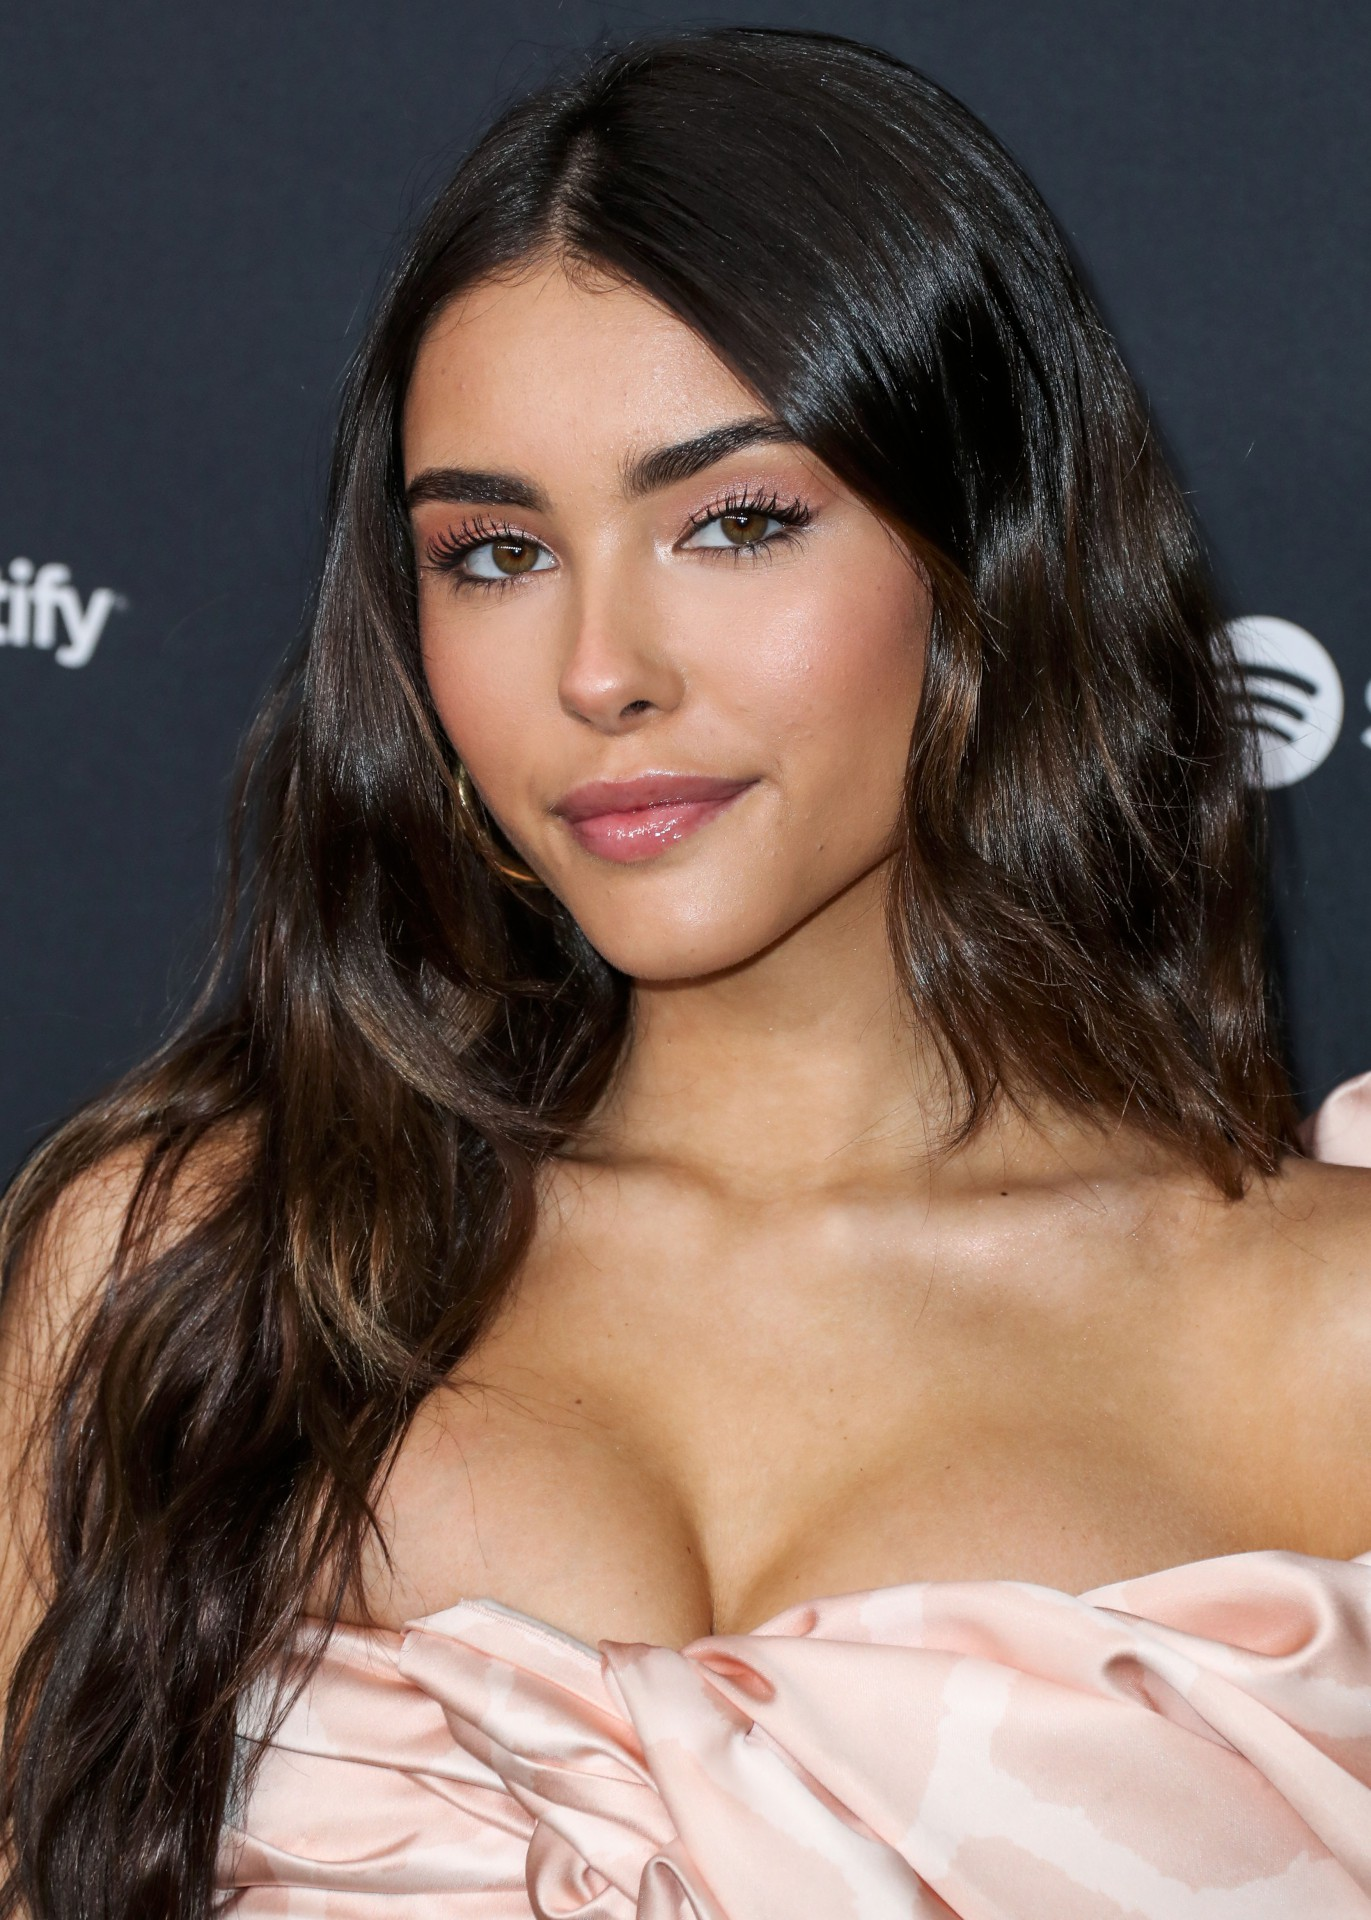 Madison Beer Sexy Cleavage